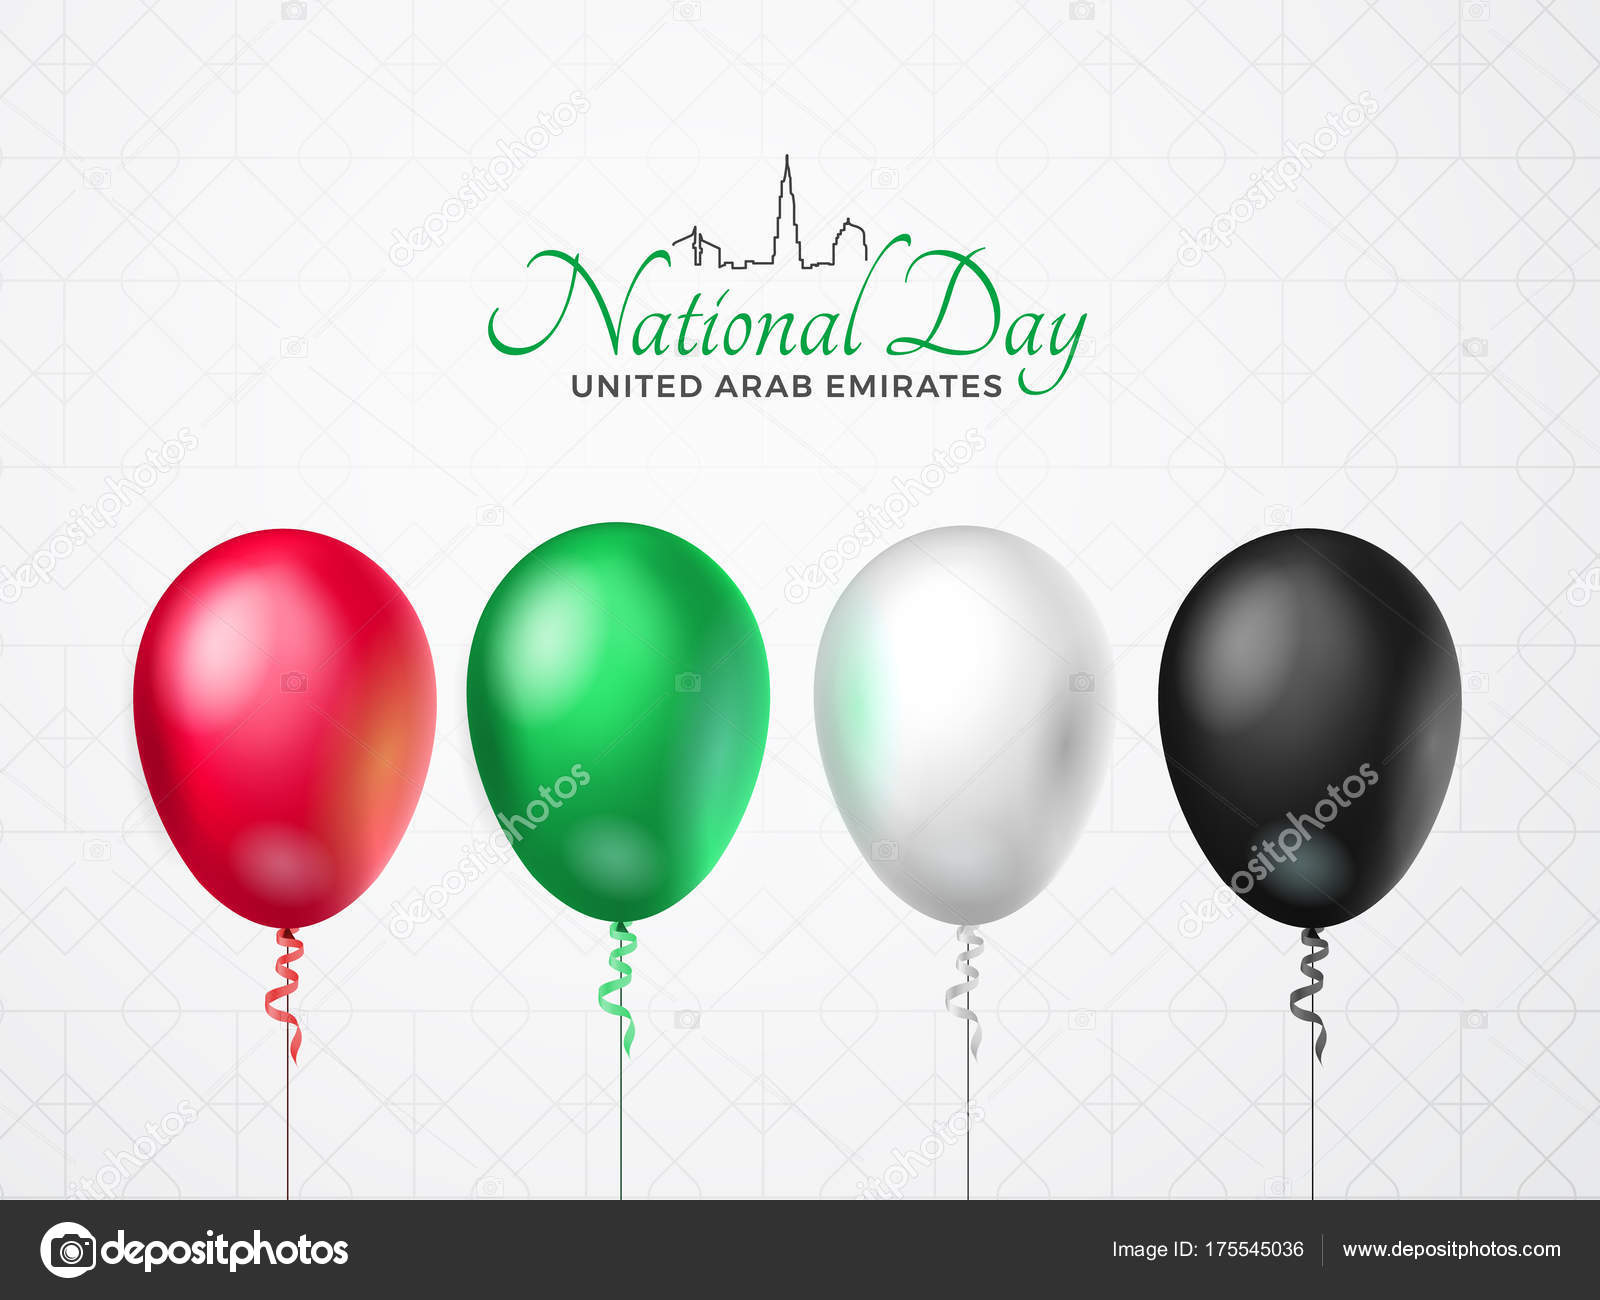 United Arab Emirates Happy National Day Greeting Card 2 December